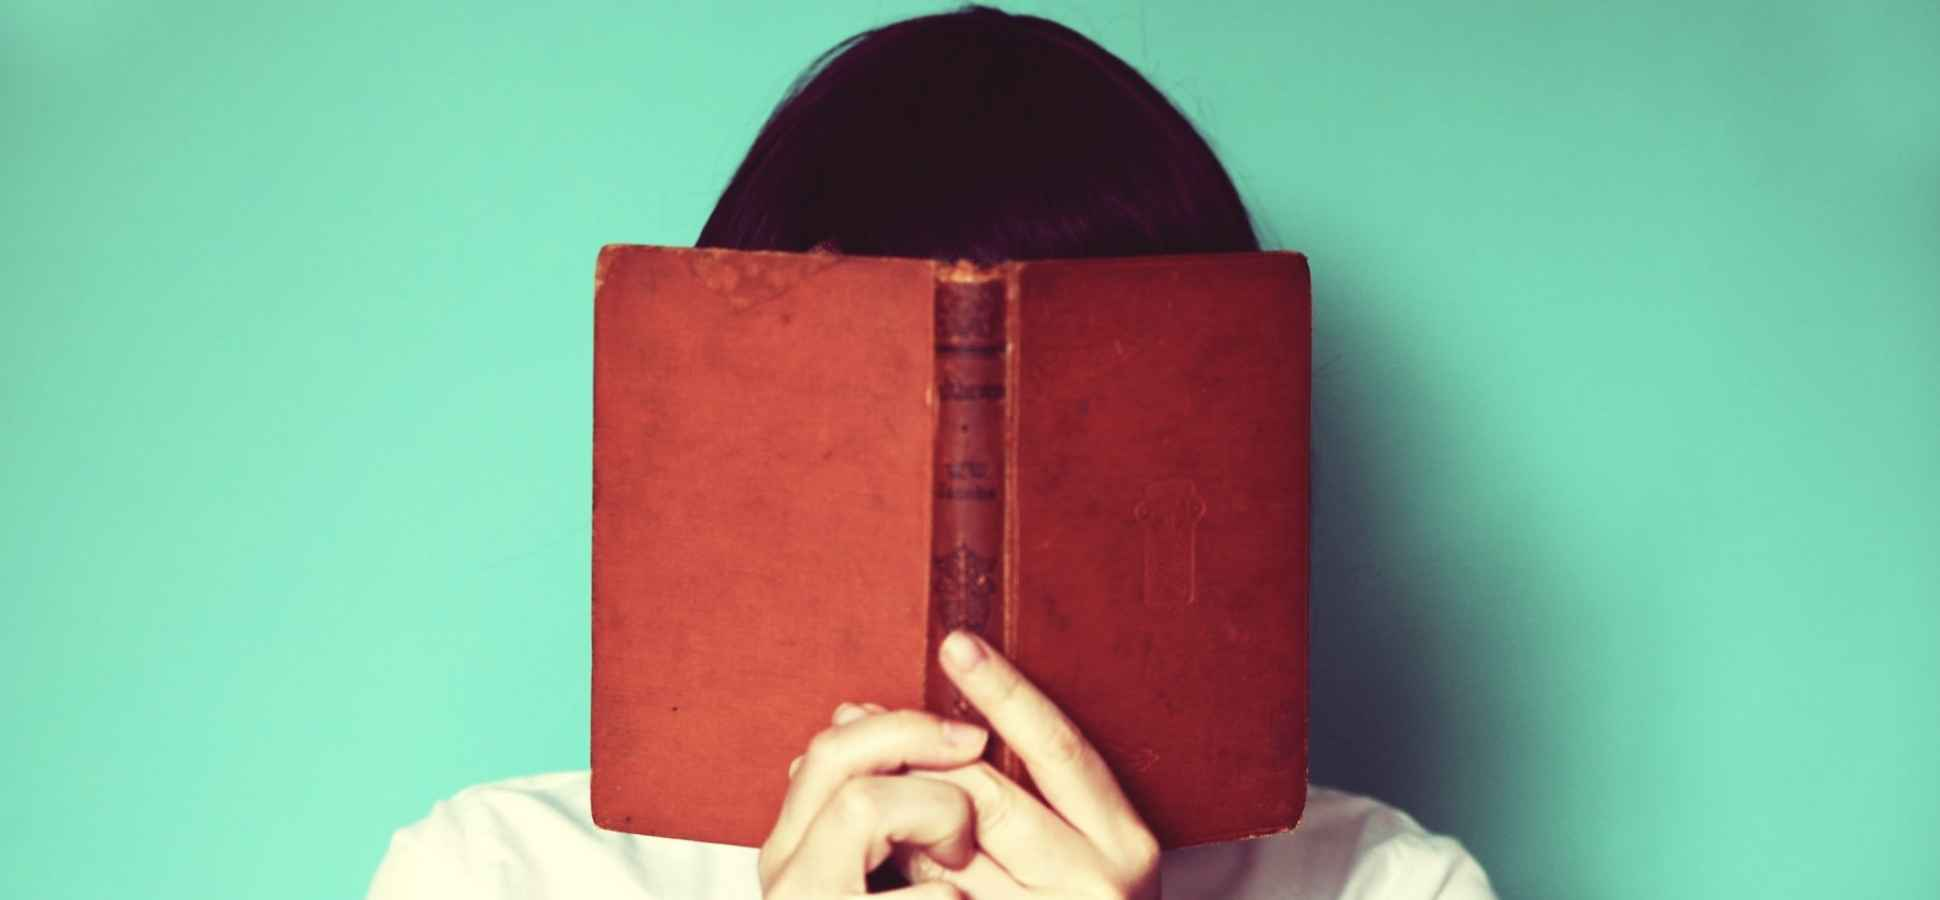 25 of the Most Inspiring Books Everyone Should Read